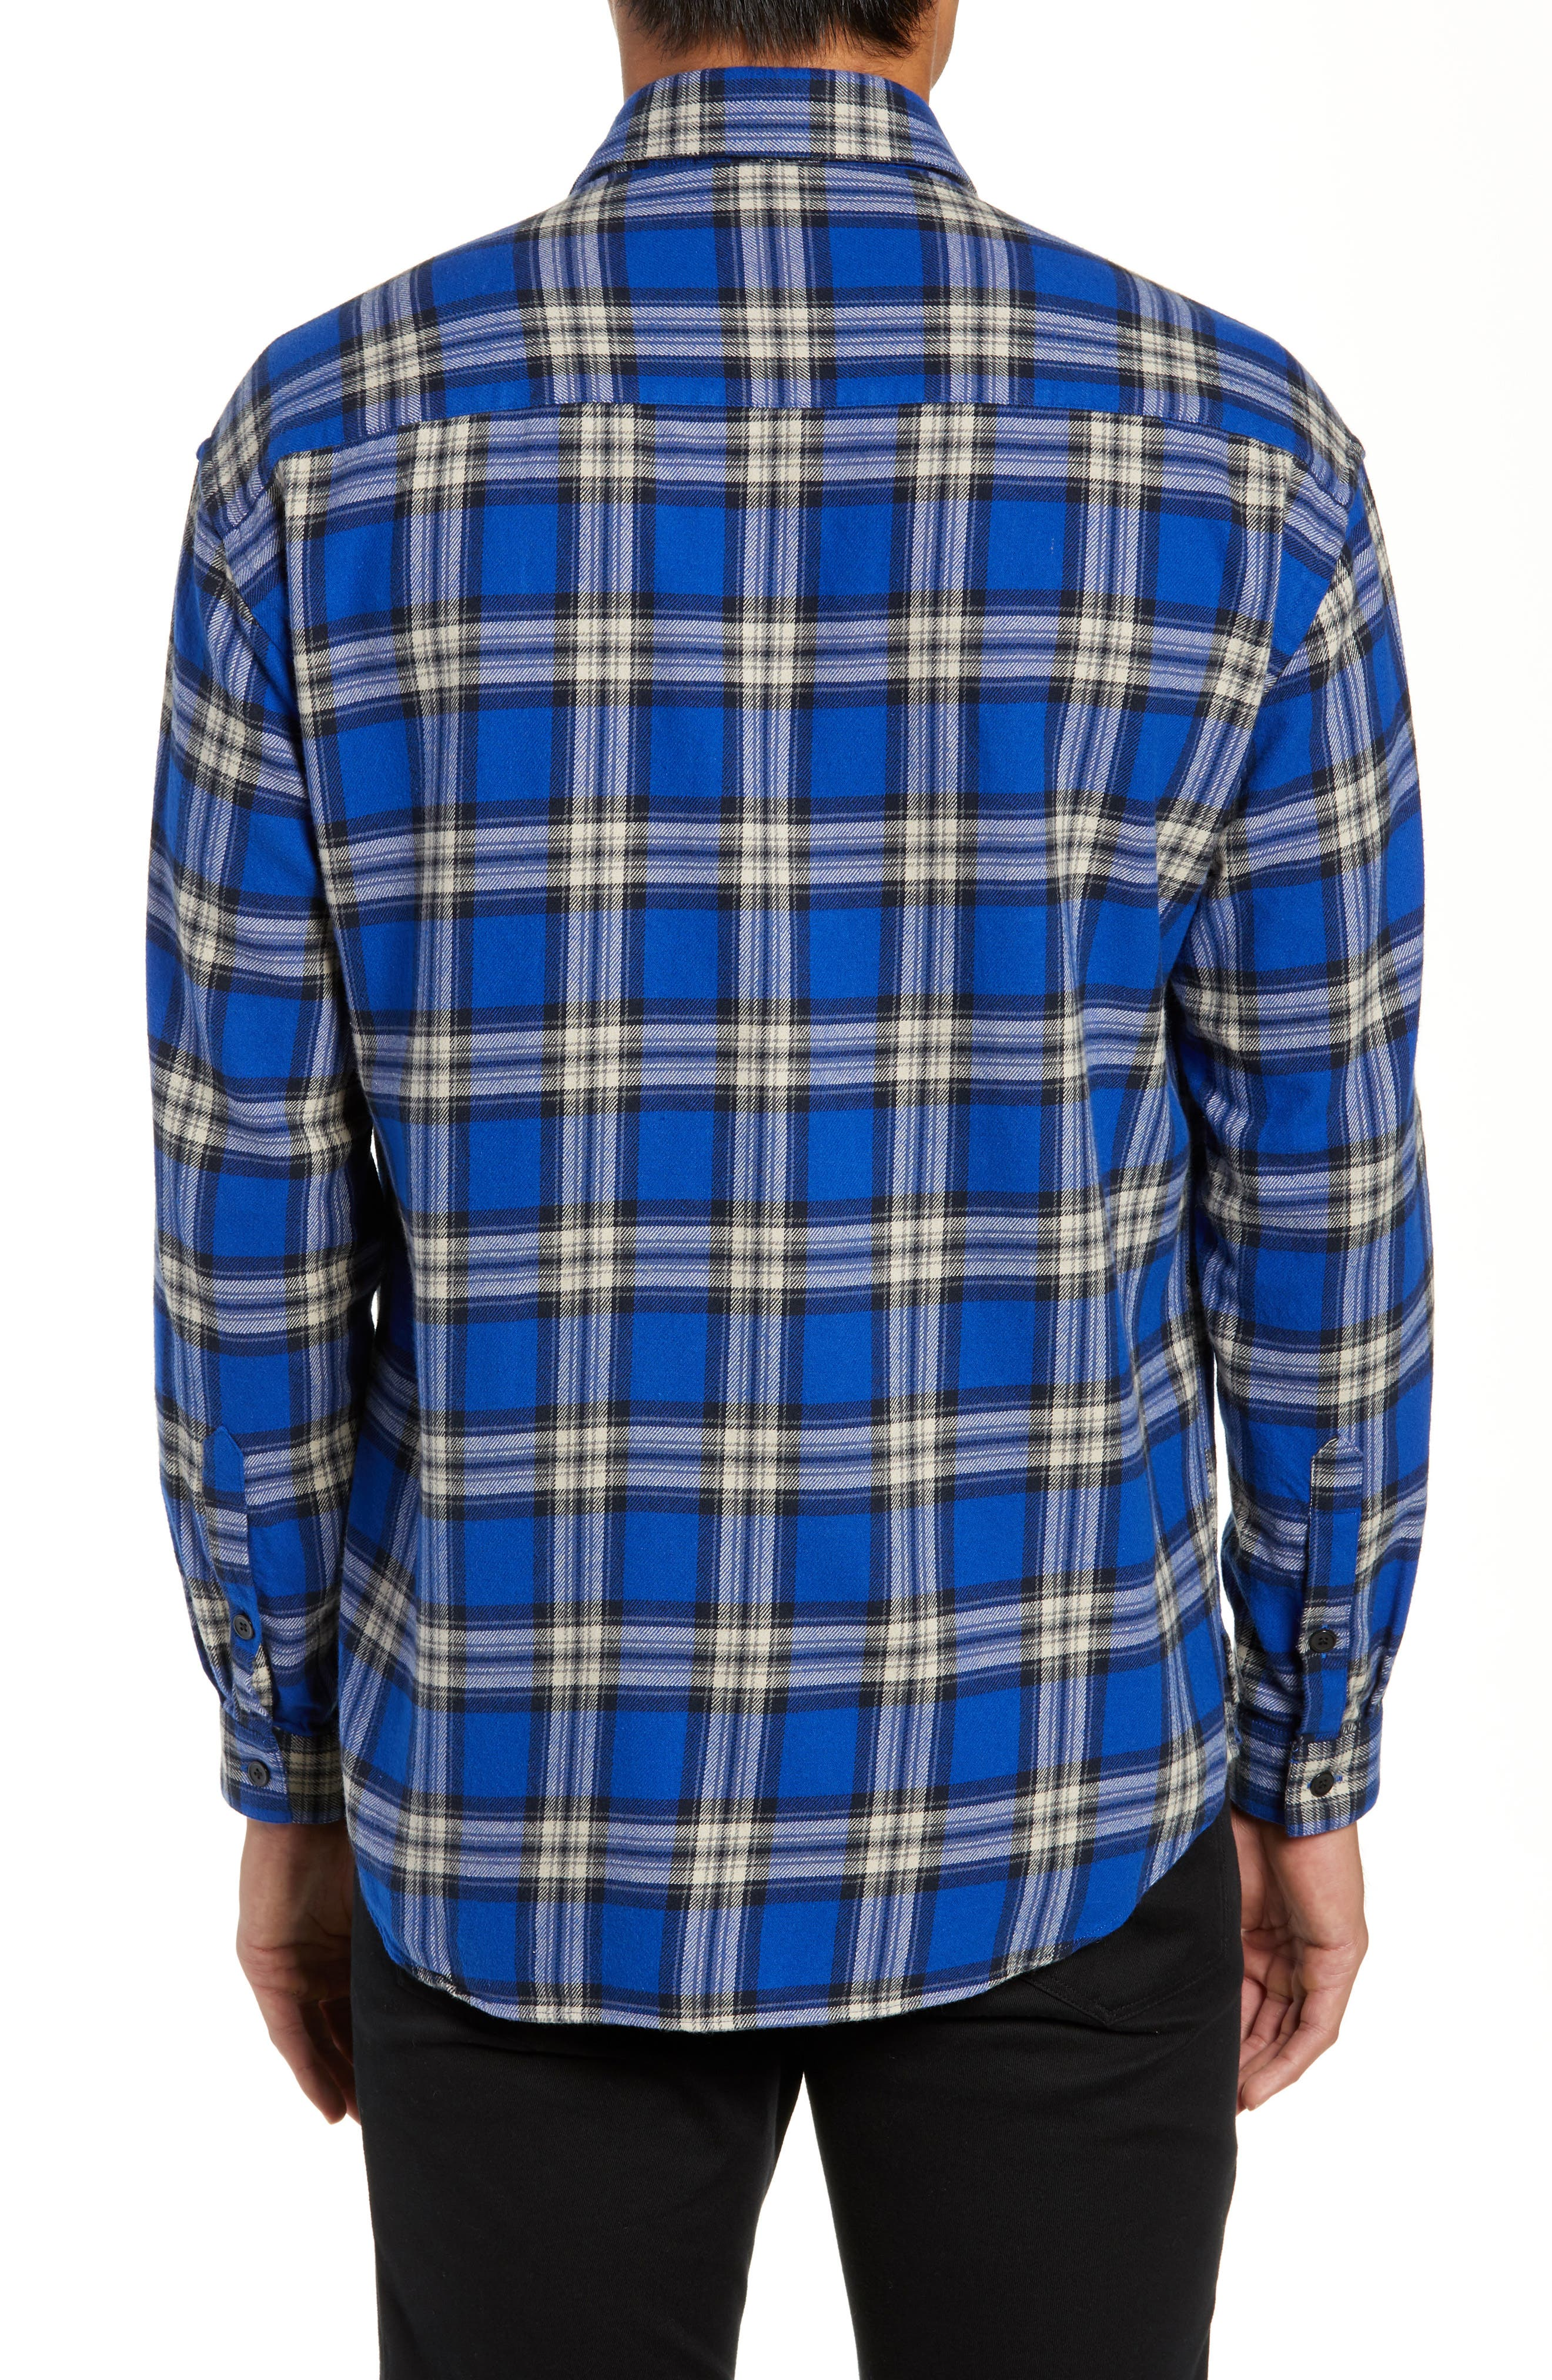 THE KOOPLES,                             Check Flannel Shirt,                             Alternate thumbnail 3, color,                             400